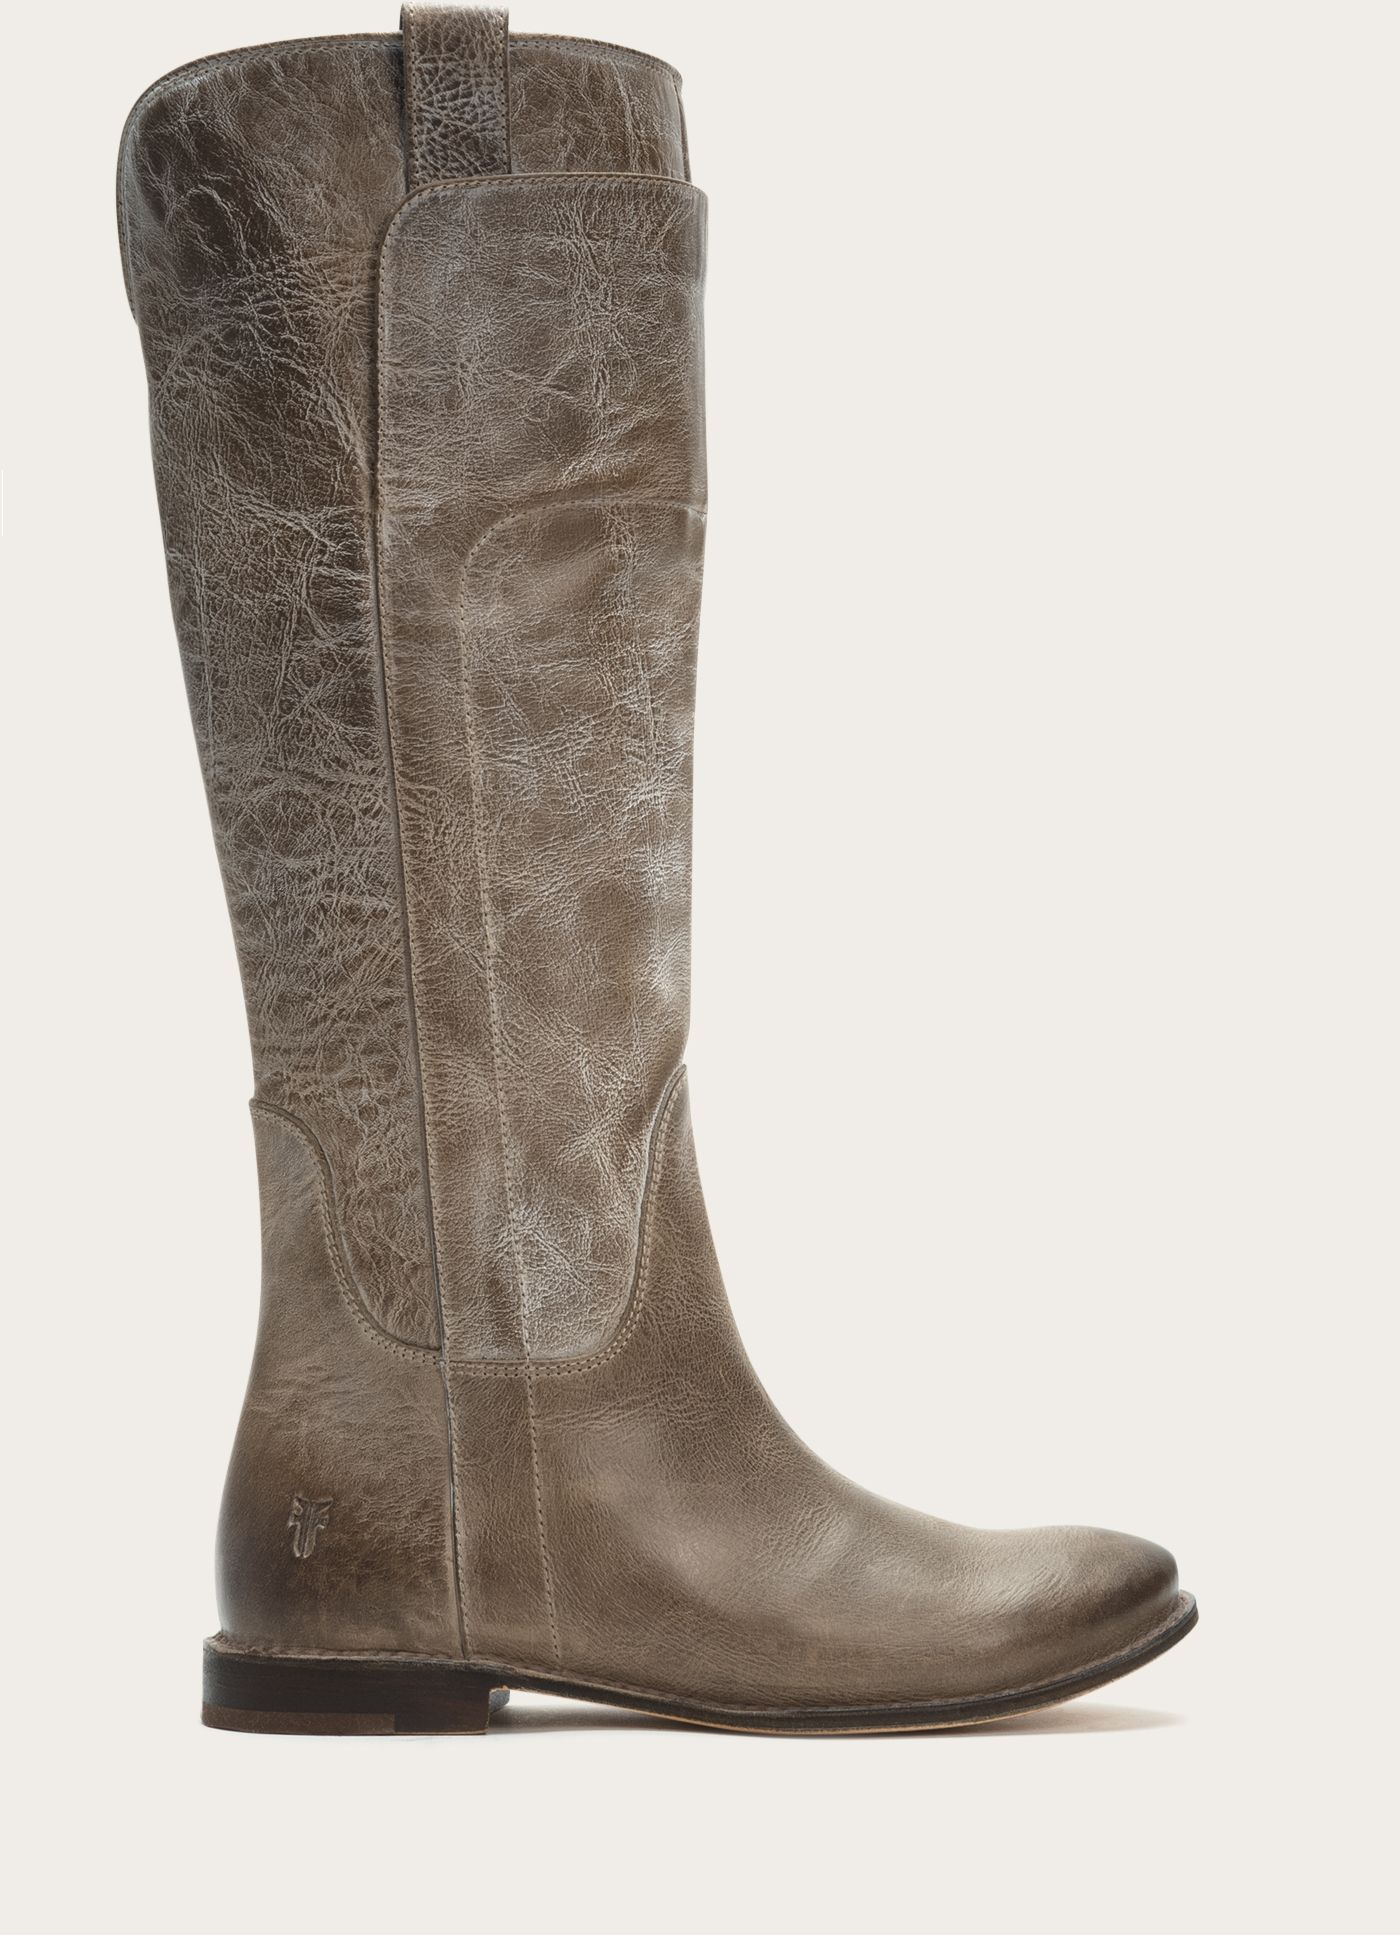 Paige Tall Riding With Images Riding Boots Rugged Leather Boots